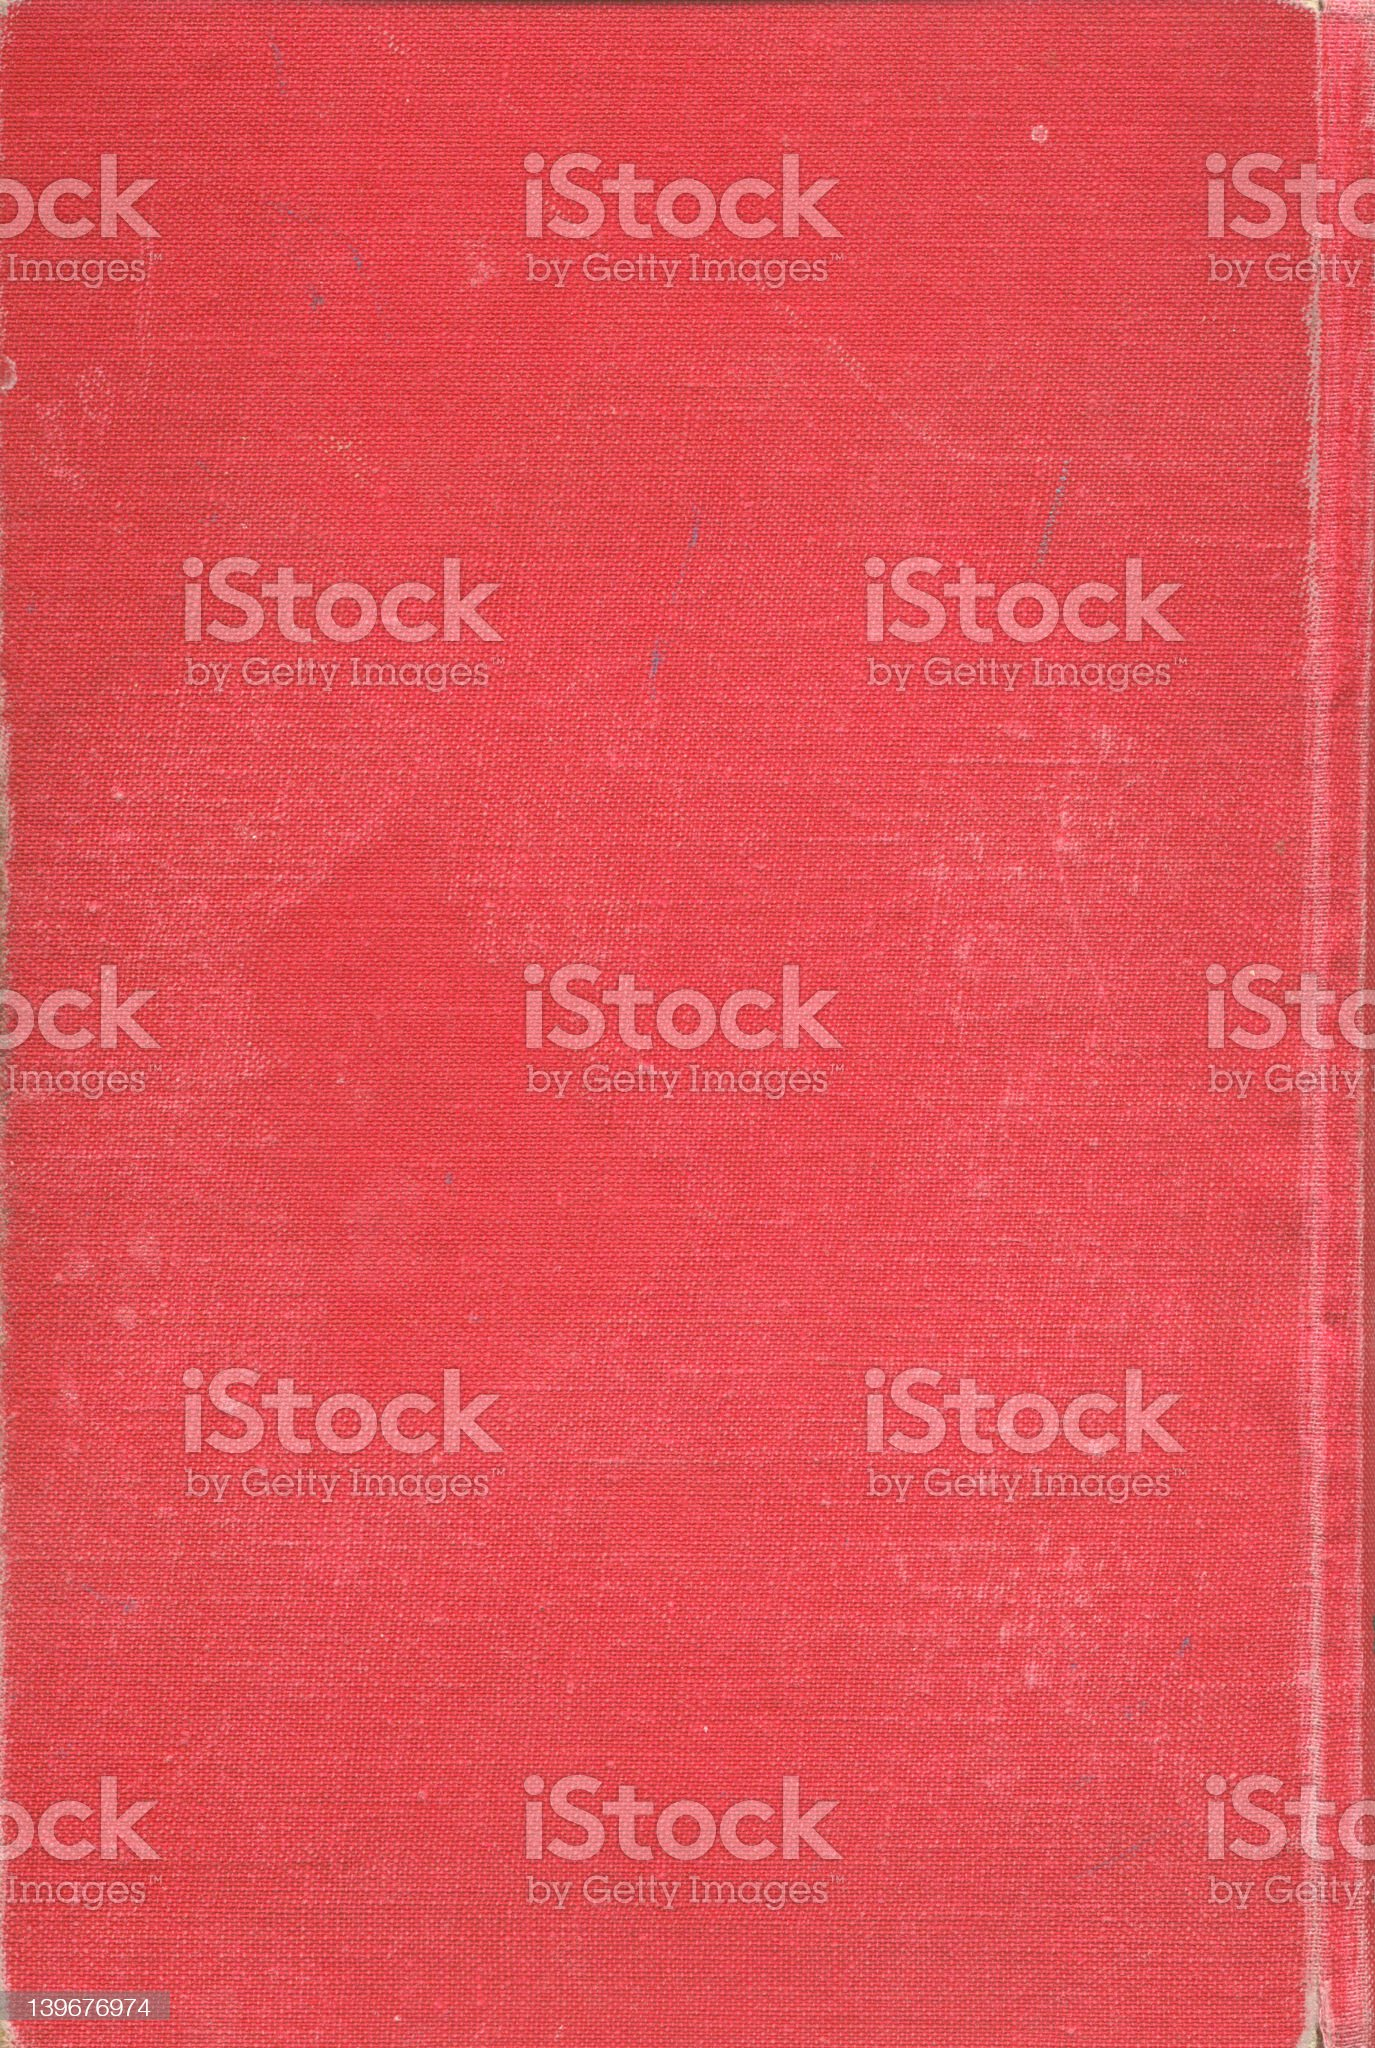 old red book cover abstract royalty-free stock photo